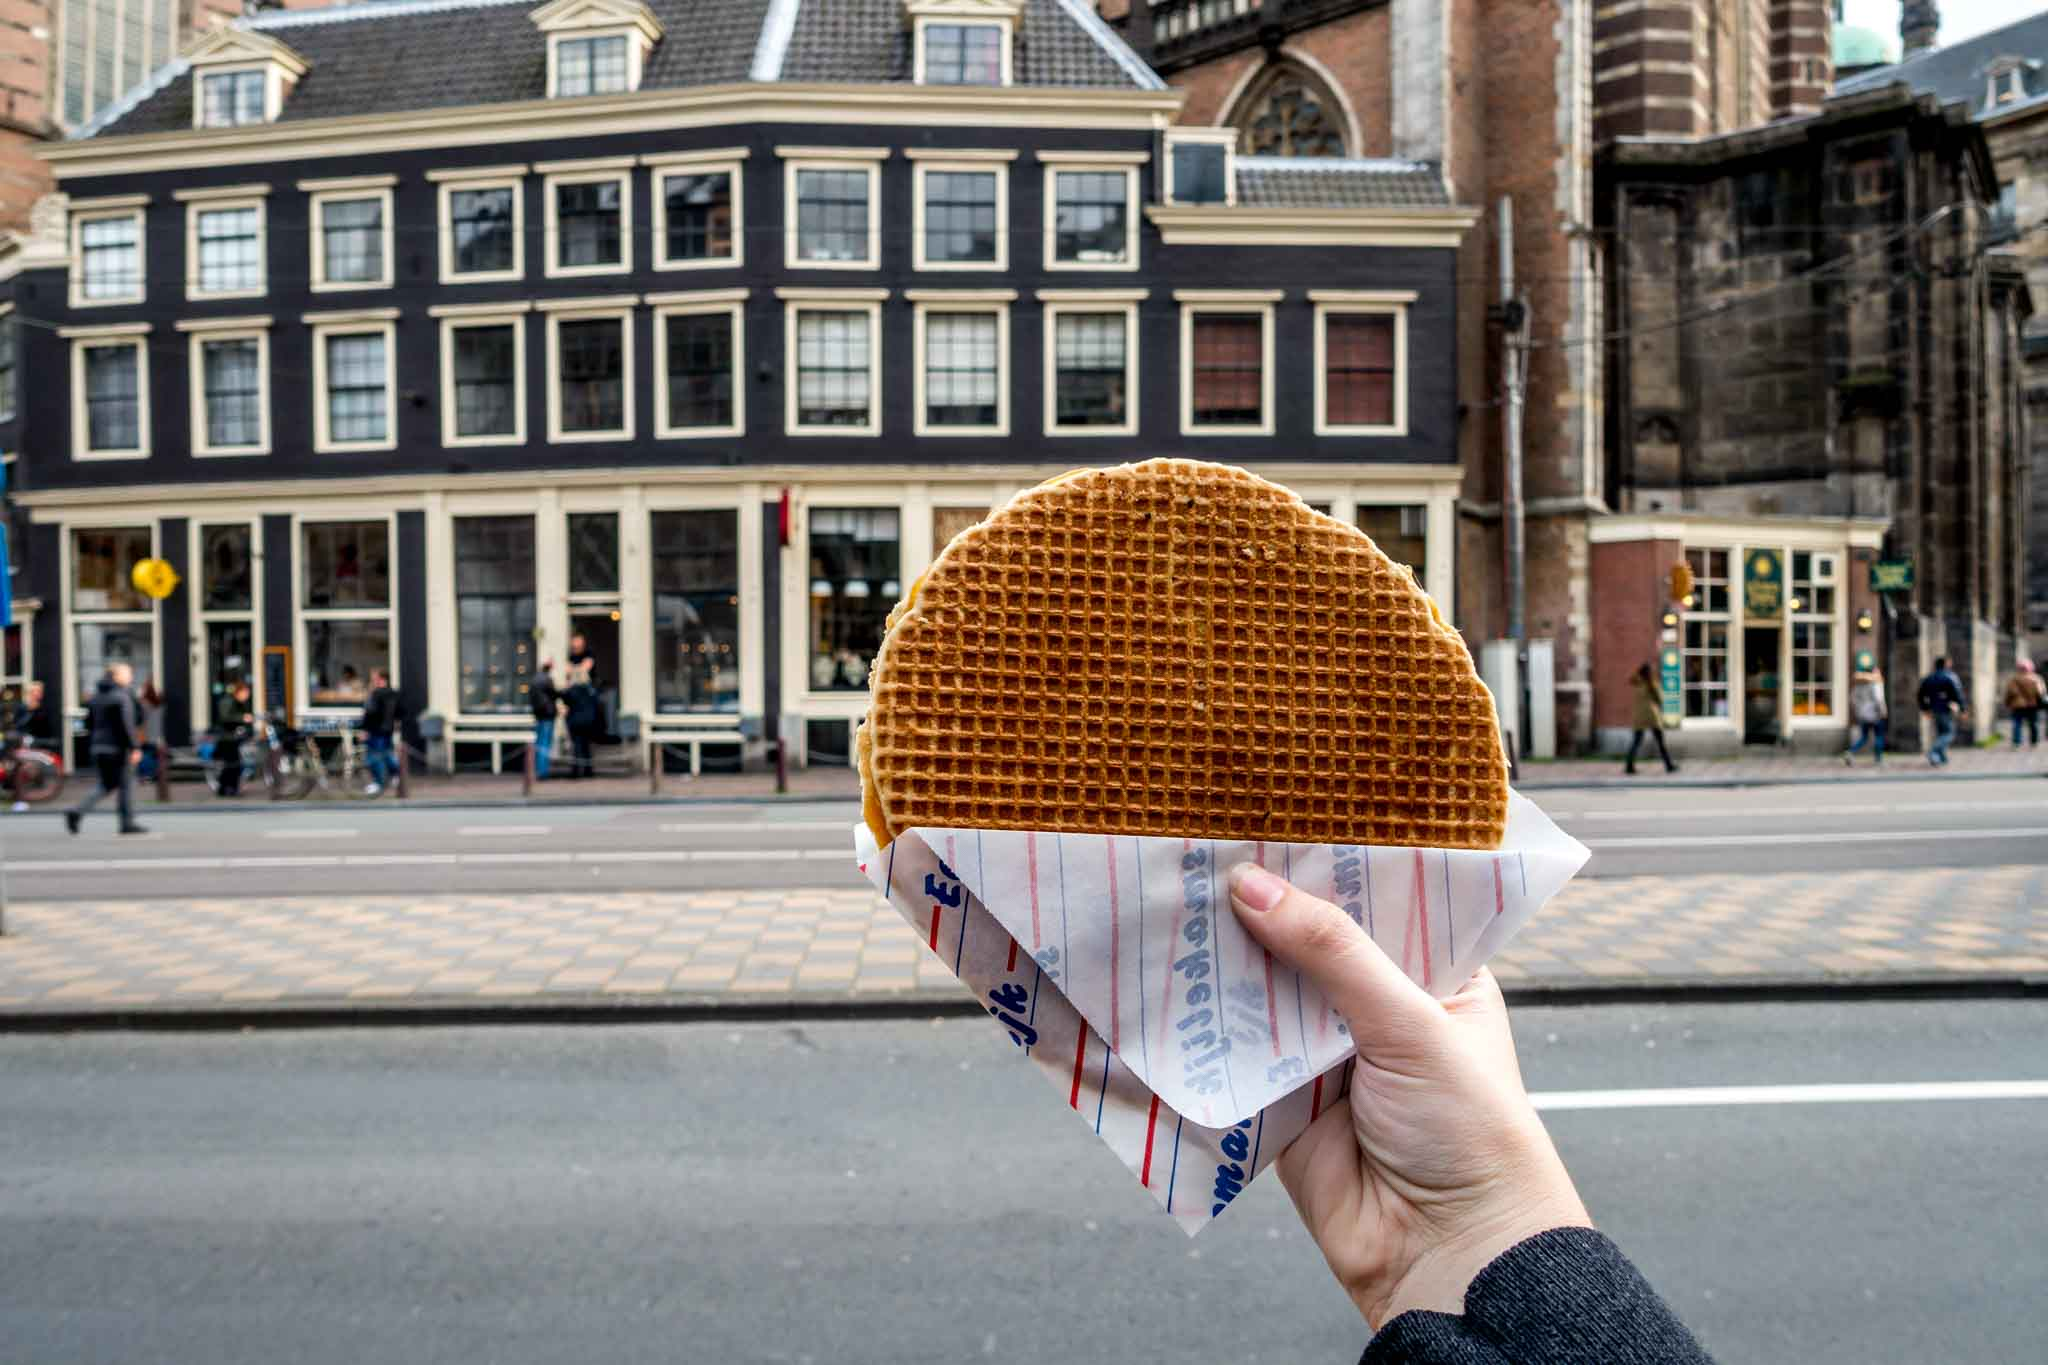 Stroopwafel (aka Dutch waffles) are great Dutch snacks to try in Amsterdam